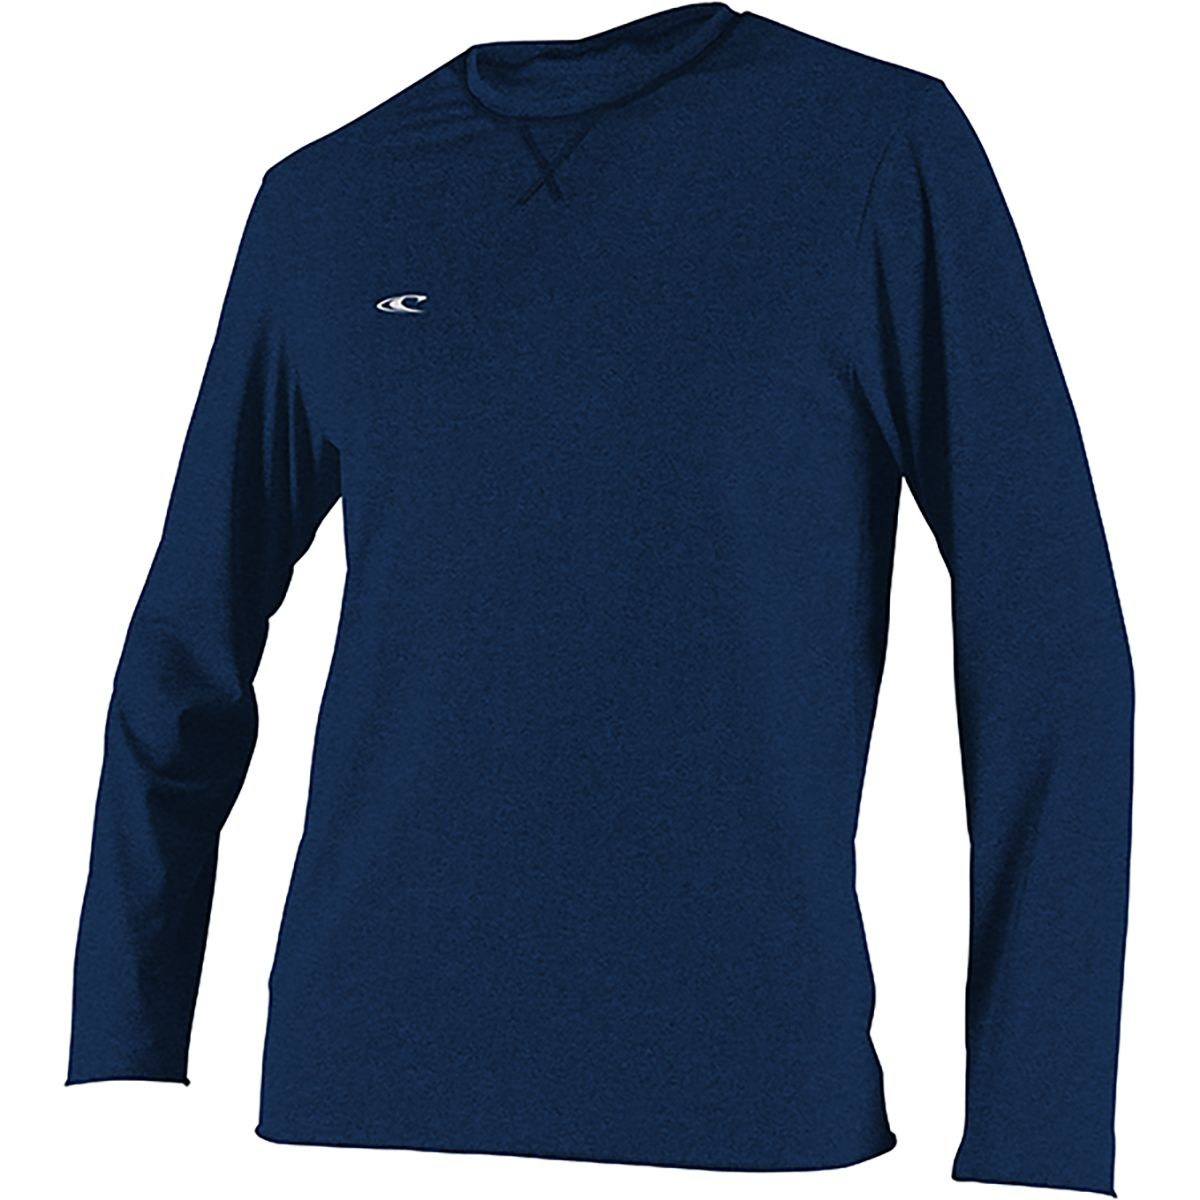 O'neill Men's Hybrid Sun Long-Sleeve Tee - Blue, XL